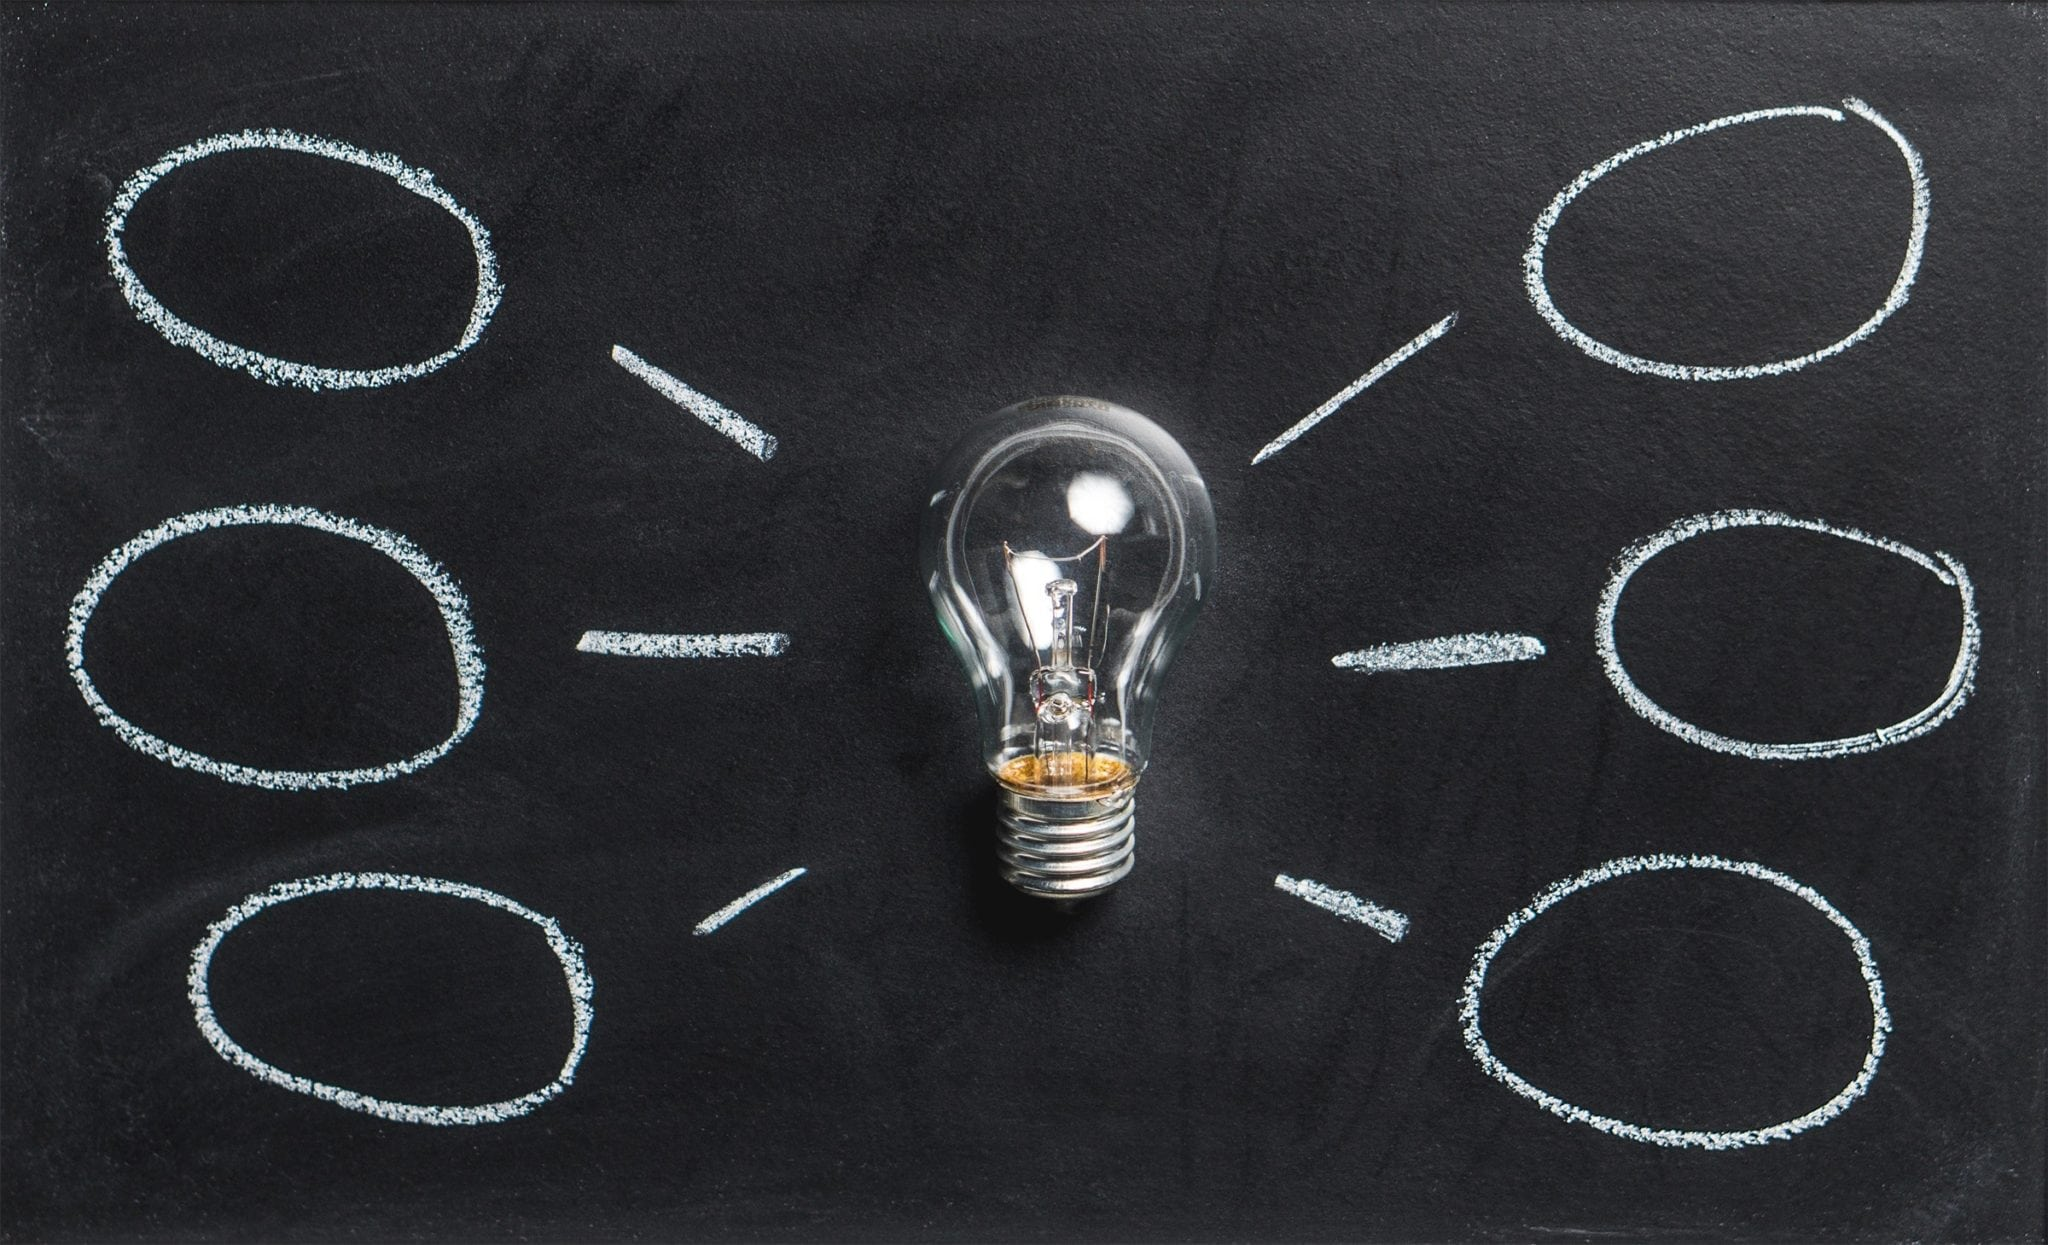 lightbulb on a chalkboard with thought bubbles